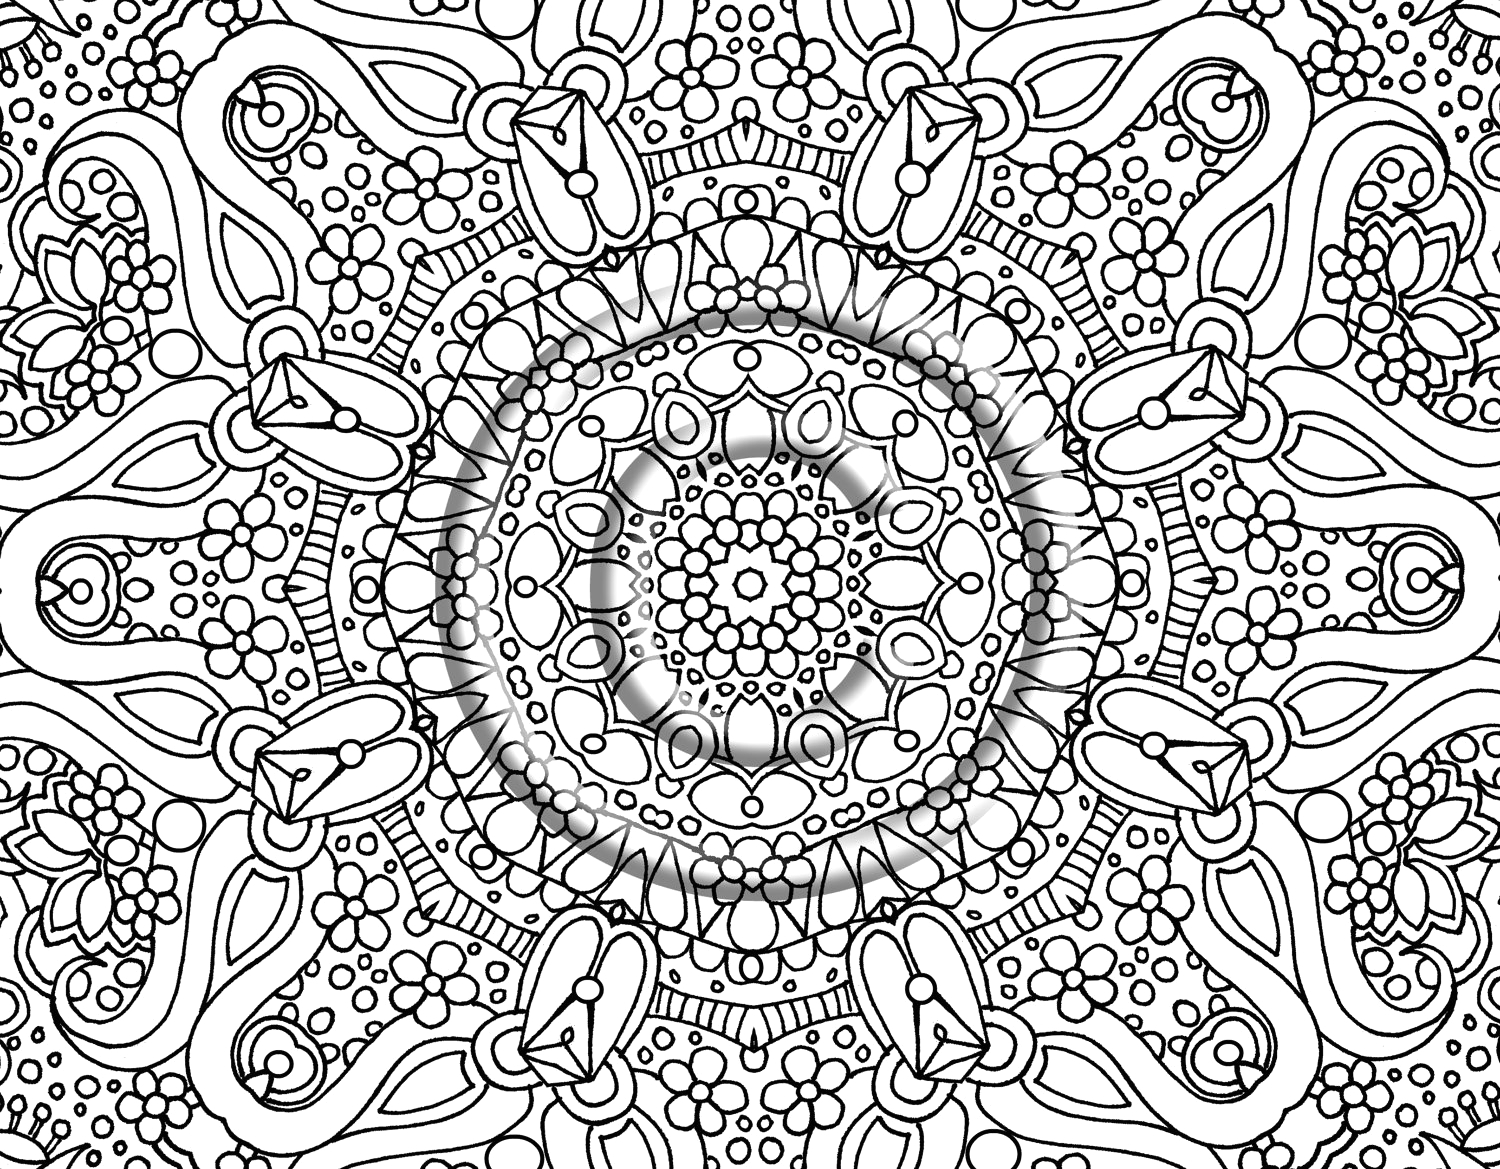 Super Hard Abstract Coloring Pages for Adults Super Hard Coloring Pages at Getdrawings